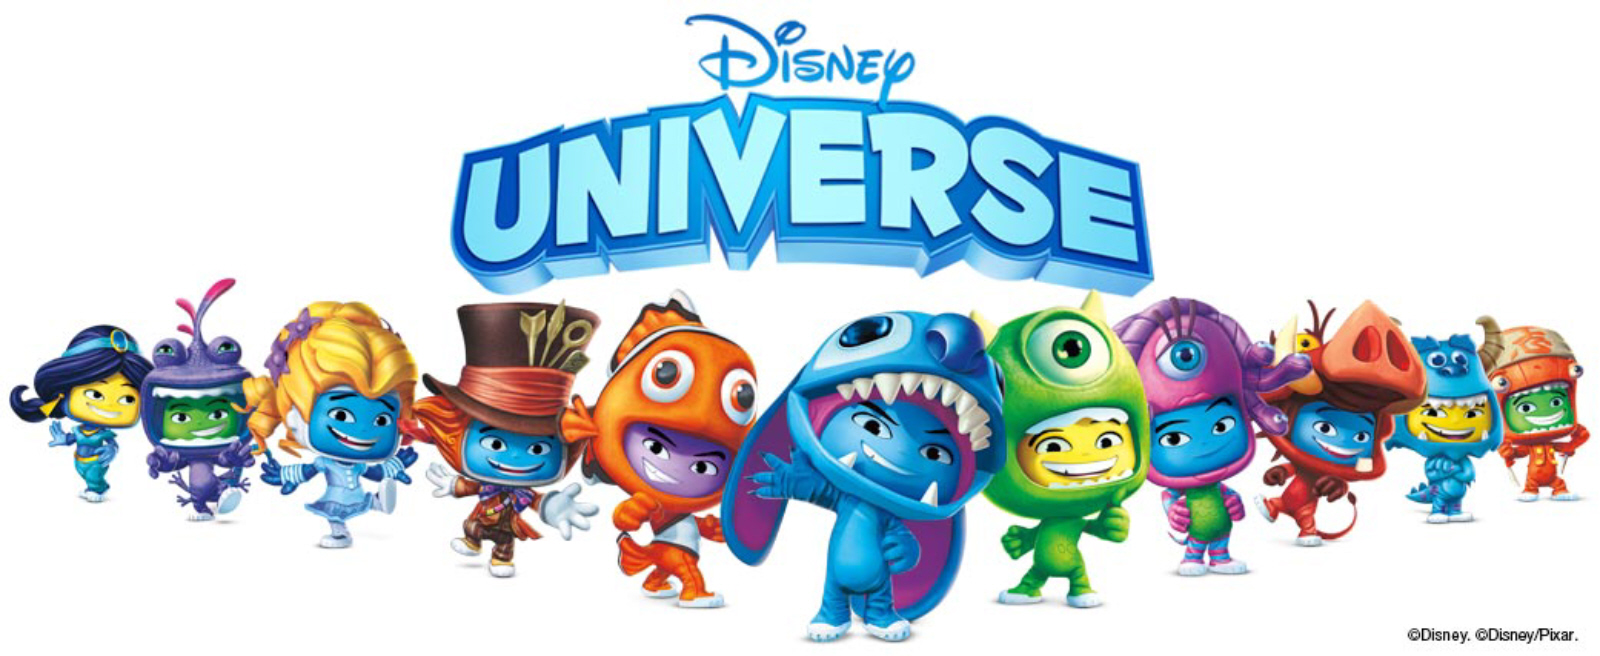 disney universe characters list disney universe cast of characters artwork